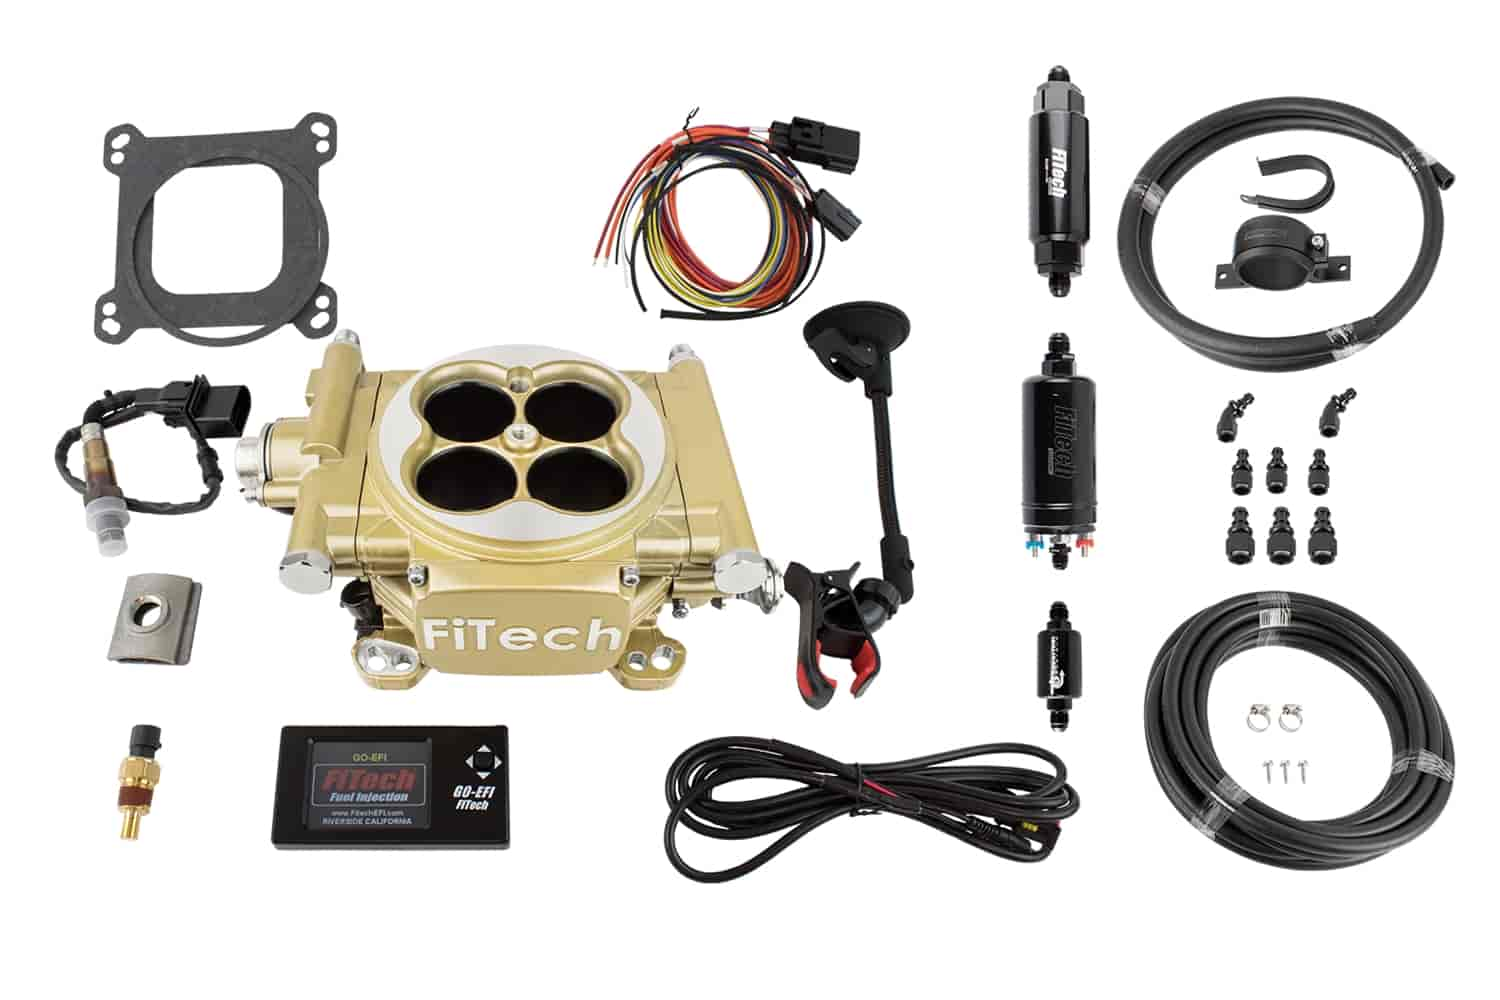 FITech Fuel Injection Easy Street EFI 600 HP Throttle Body System Master  Kit Includes: In-line Fuel Pump